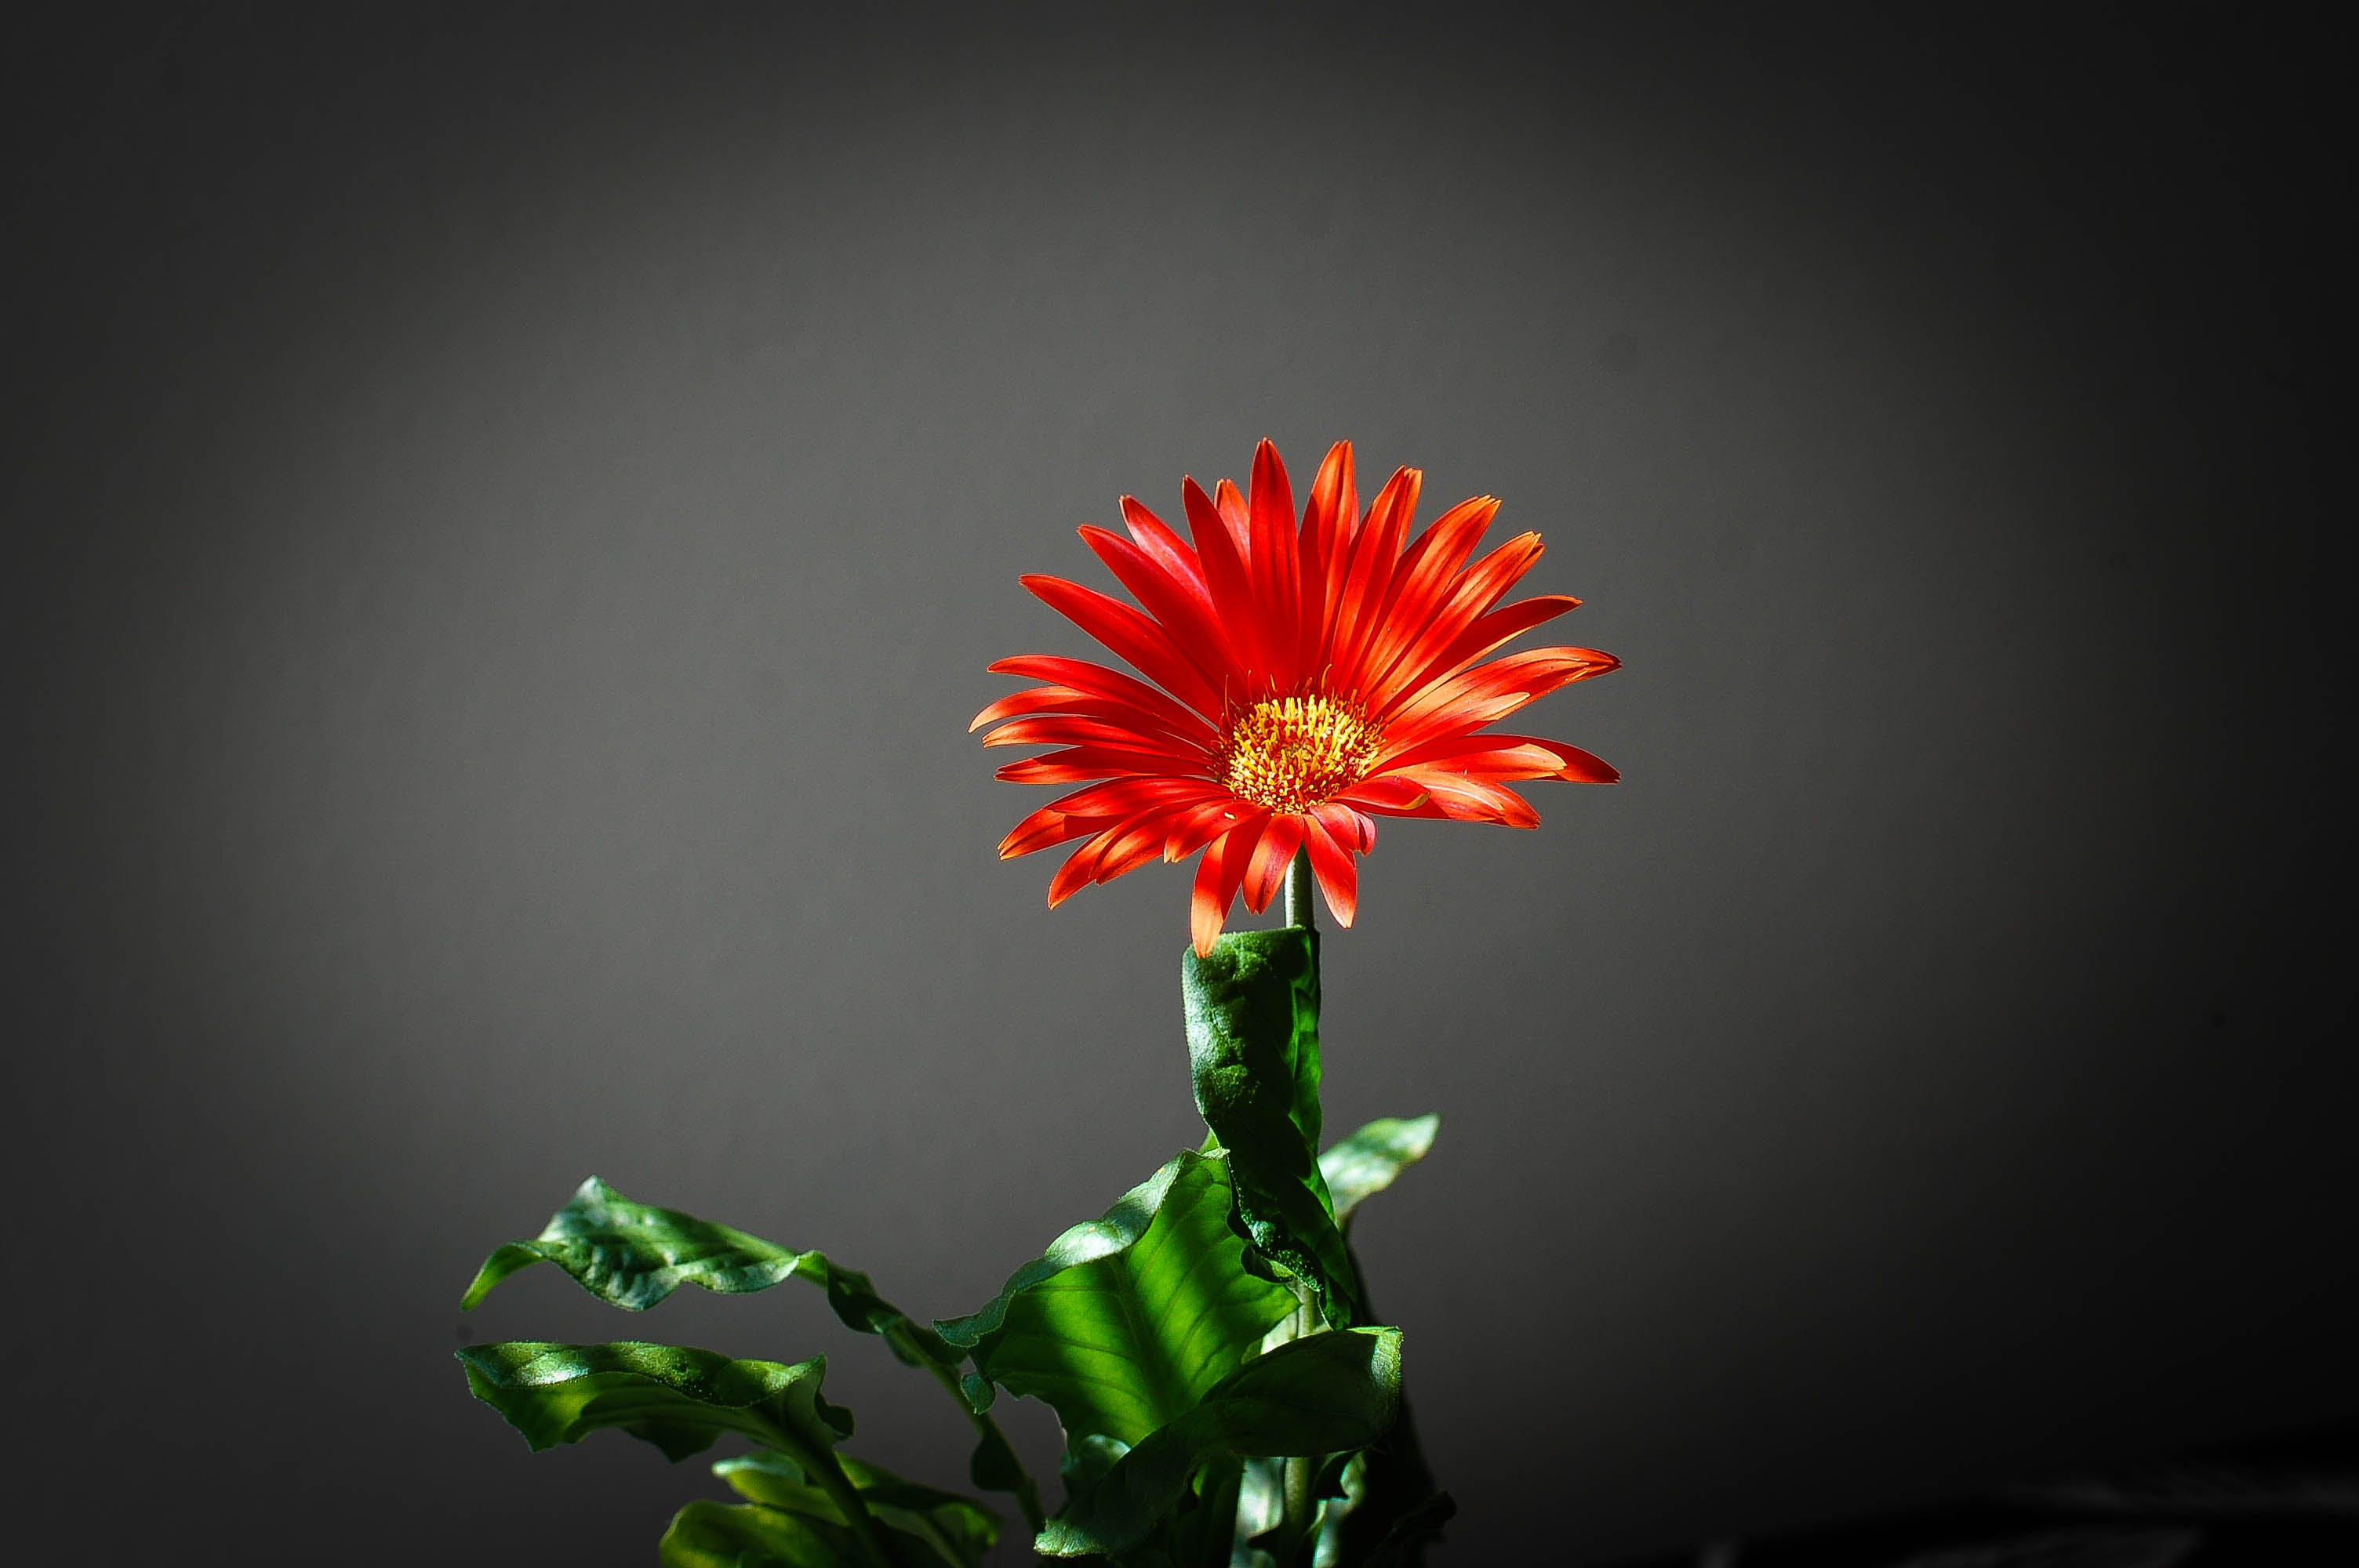 Closeup Photo of Red Petaled Flower in Black Background